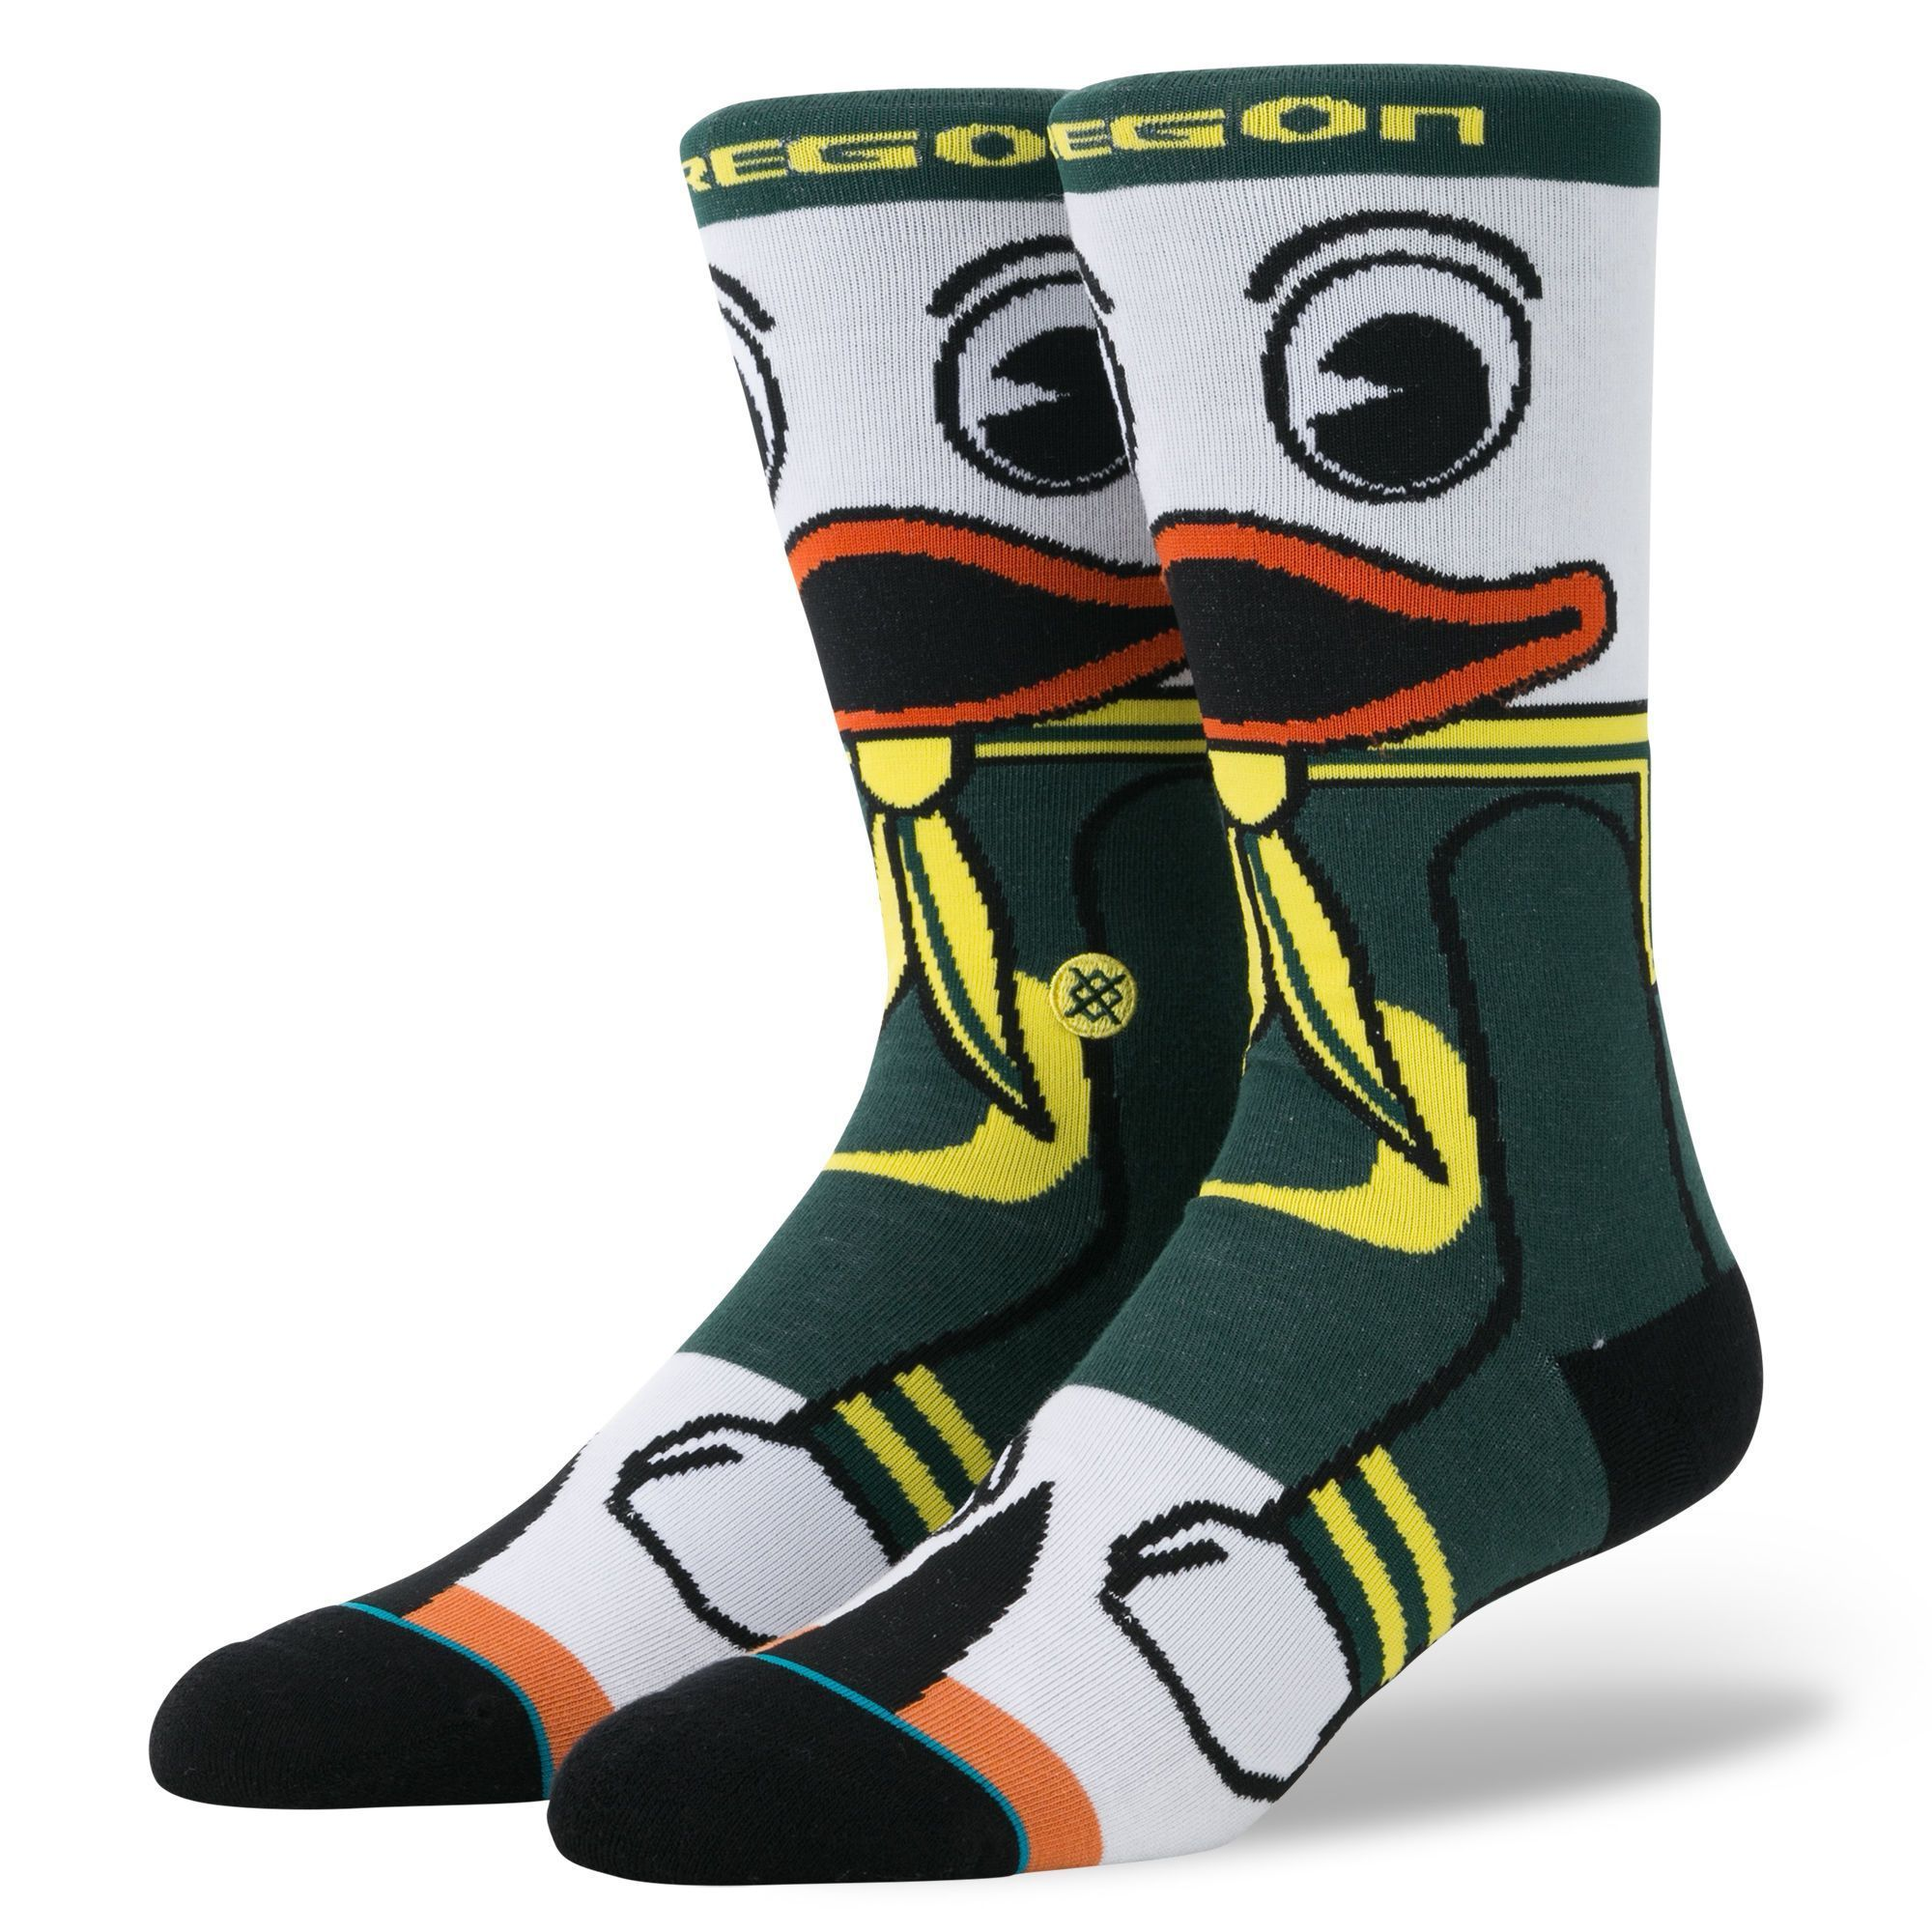 Stance - University of Oregon Fighting Duck Crew Socks | Men's - Knock Your Socks Off